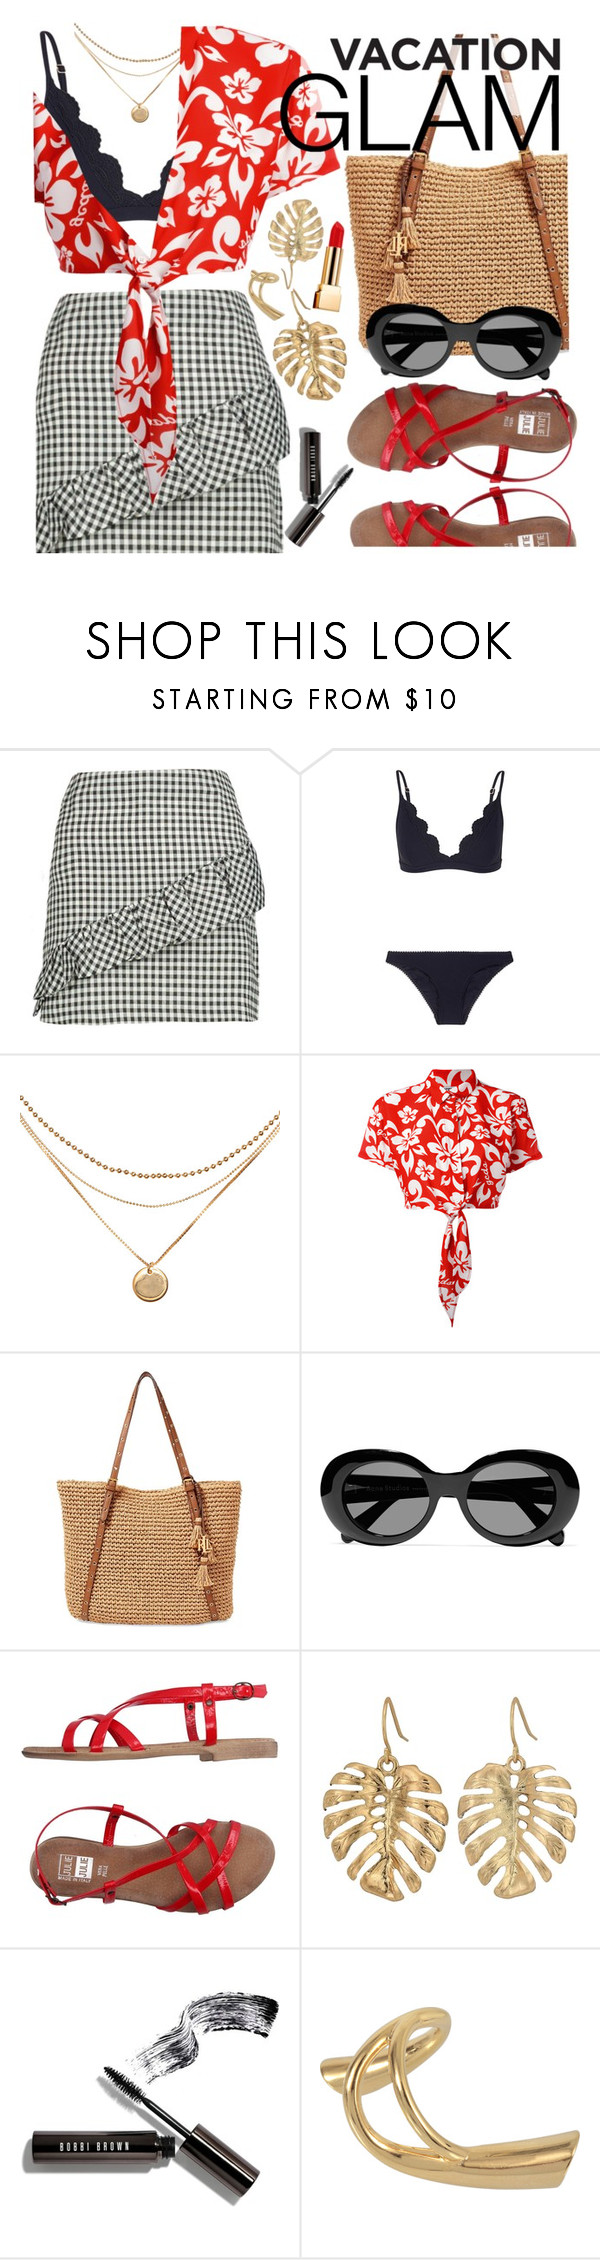 """Vacation Glam"" by ivansyd ❤ liked on Polyvore featuring Boohoo, Zimmermann, GCDS, Lauren Ralph Lauren, Acne Studios, The Sak, Bobbi Brown Cosmetics, Charlotte Chesnais, Yves Saint Laurent and FloralTop"